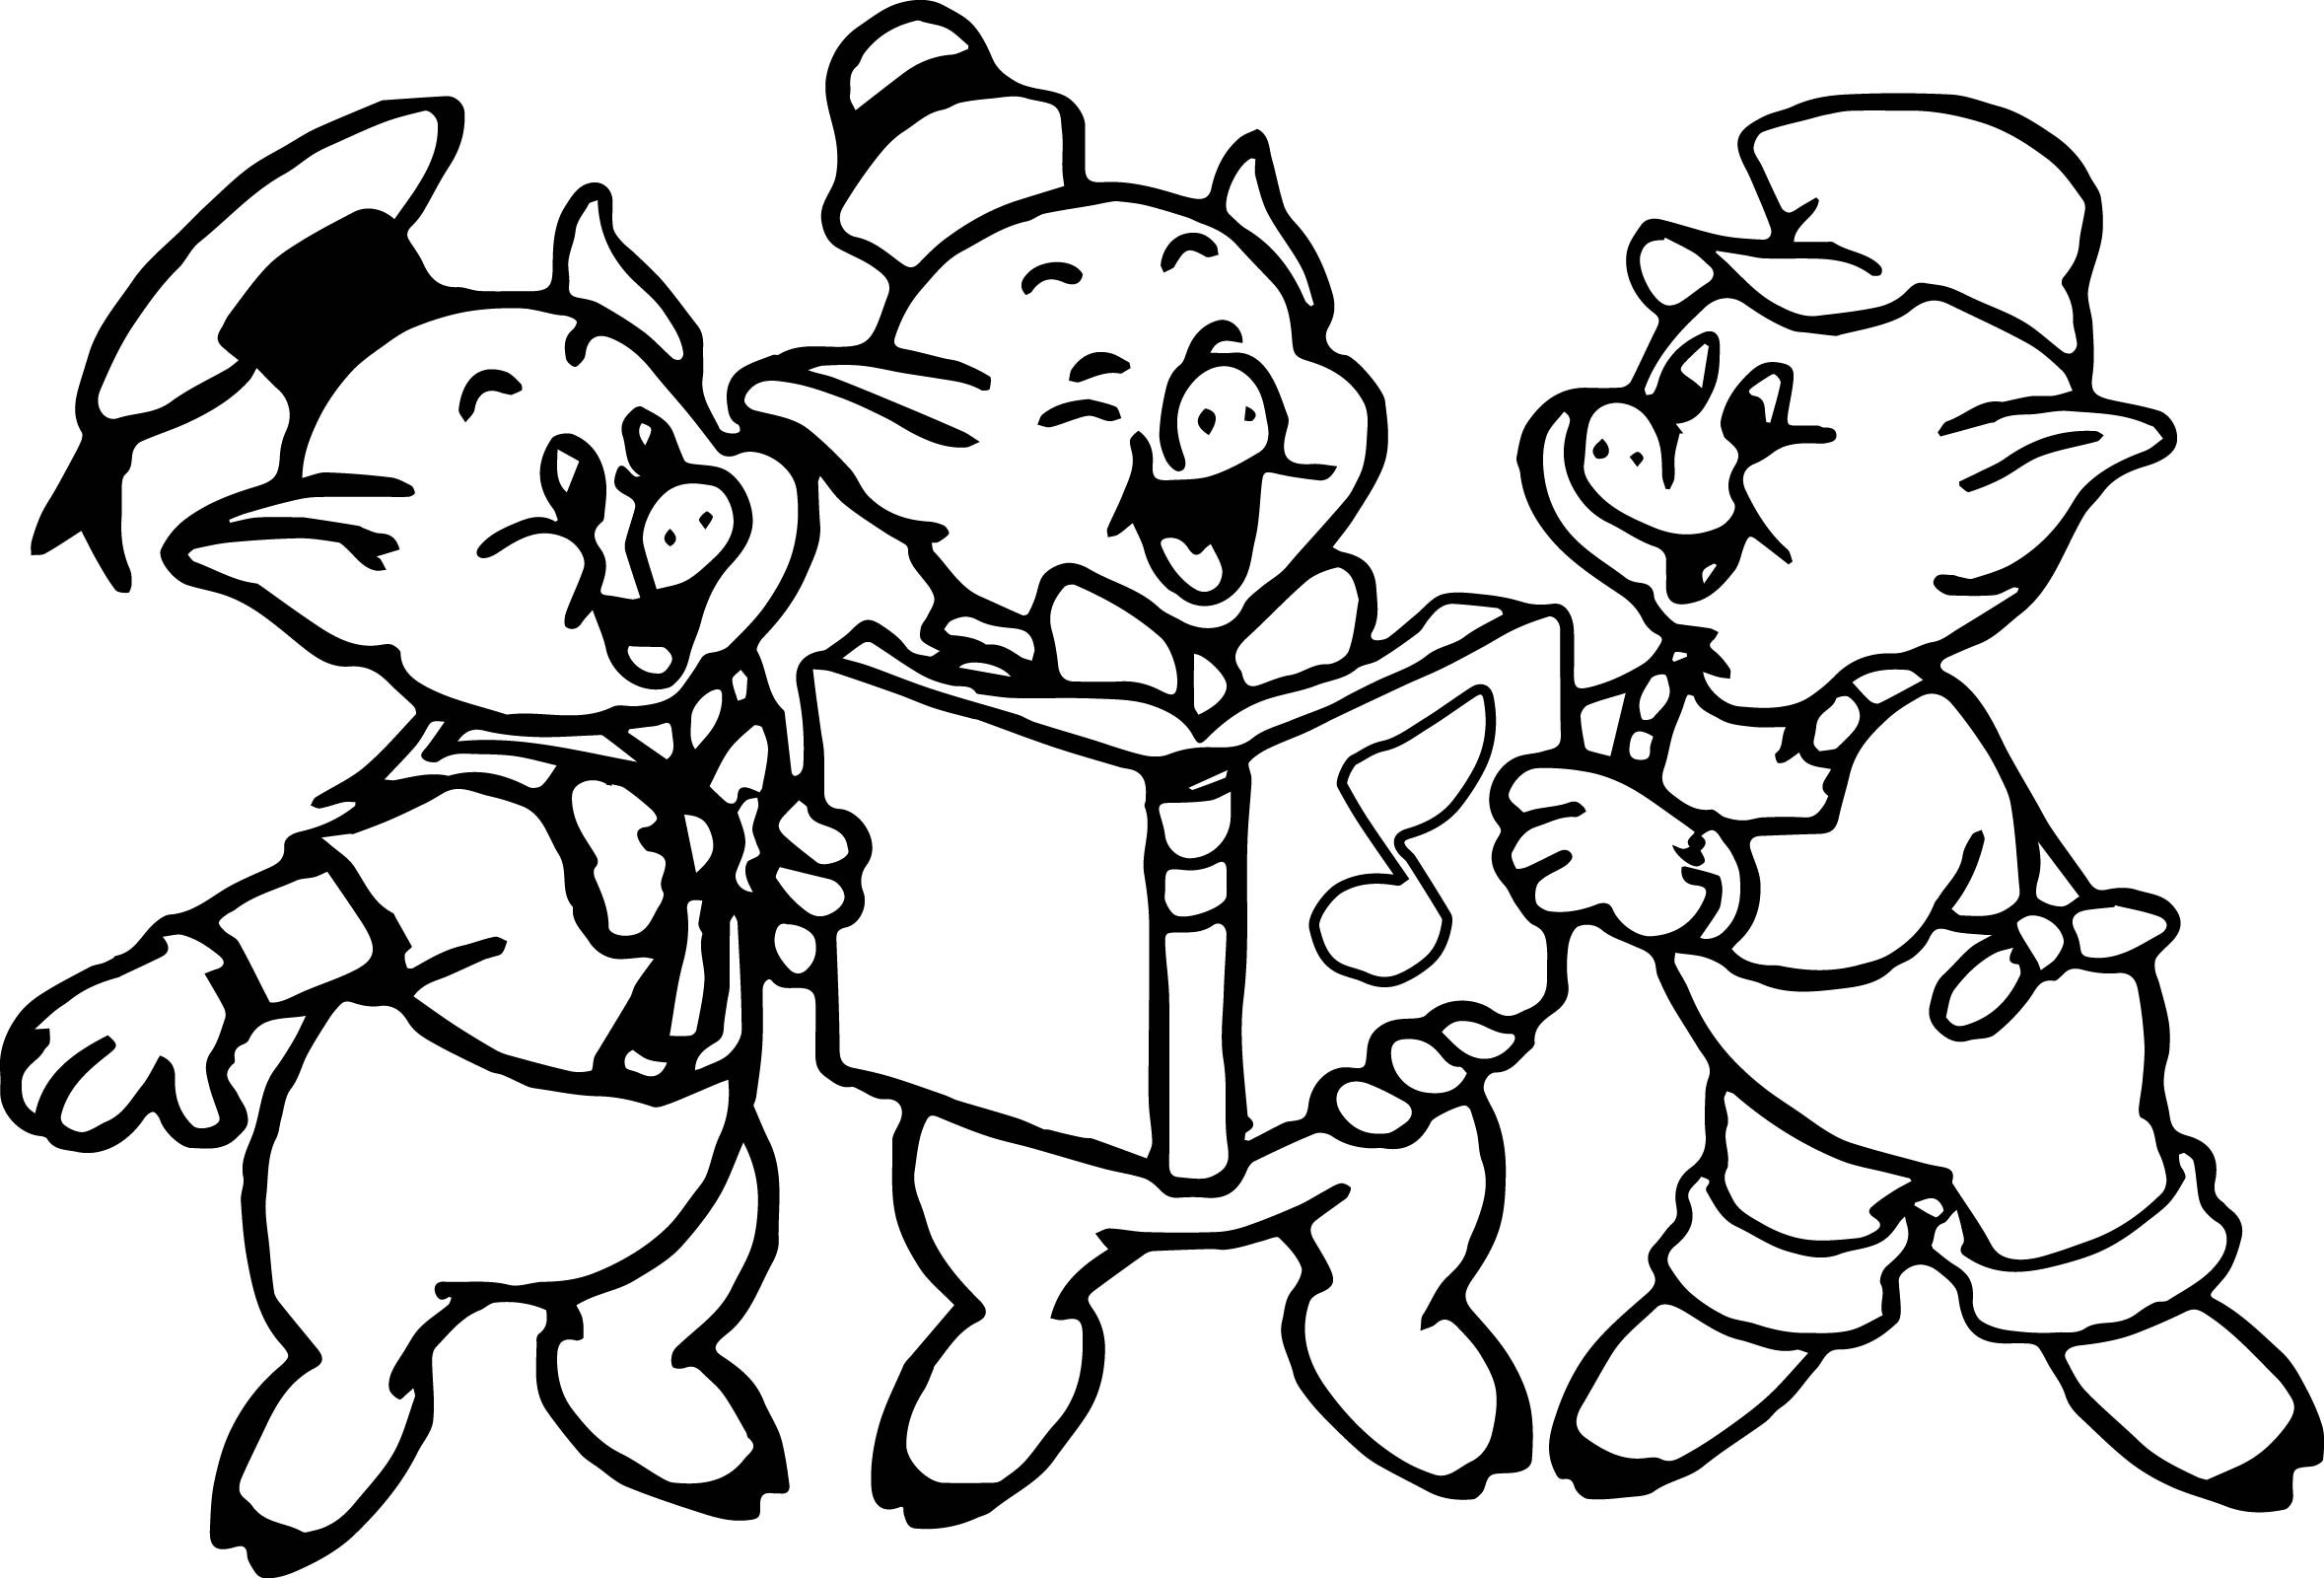 Three Little Pigs Music Book Coloring Page